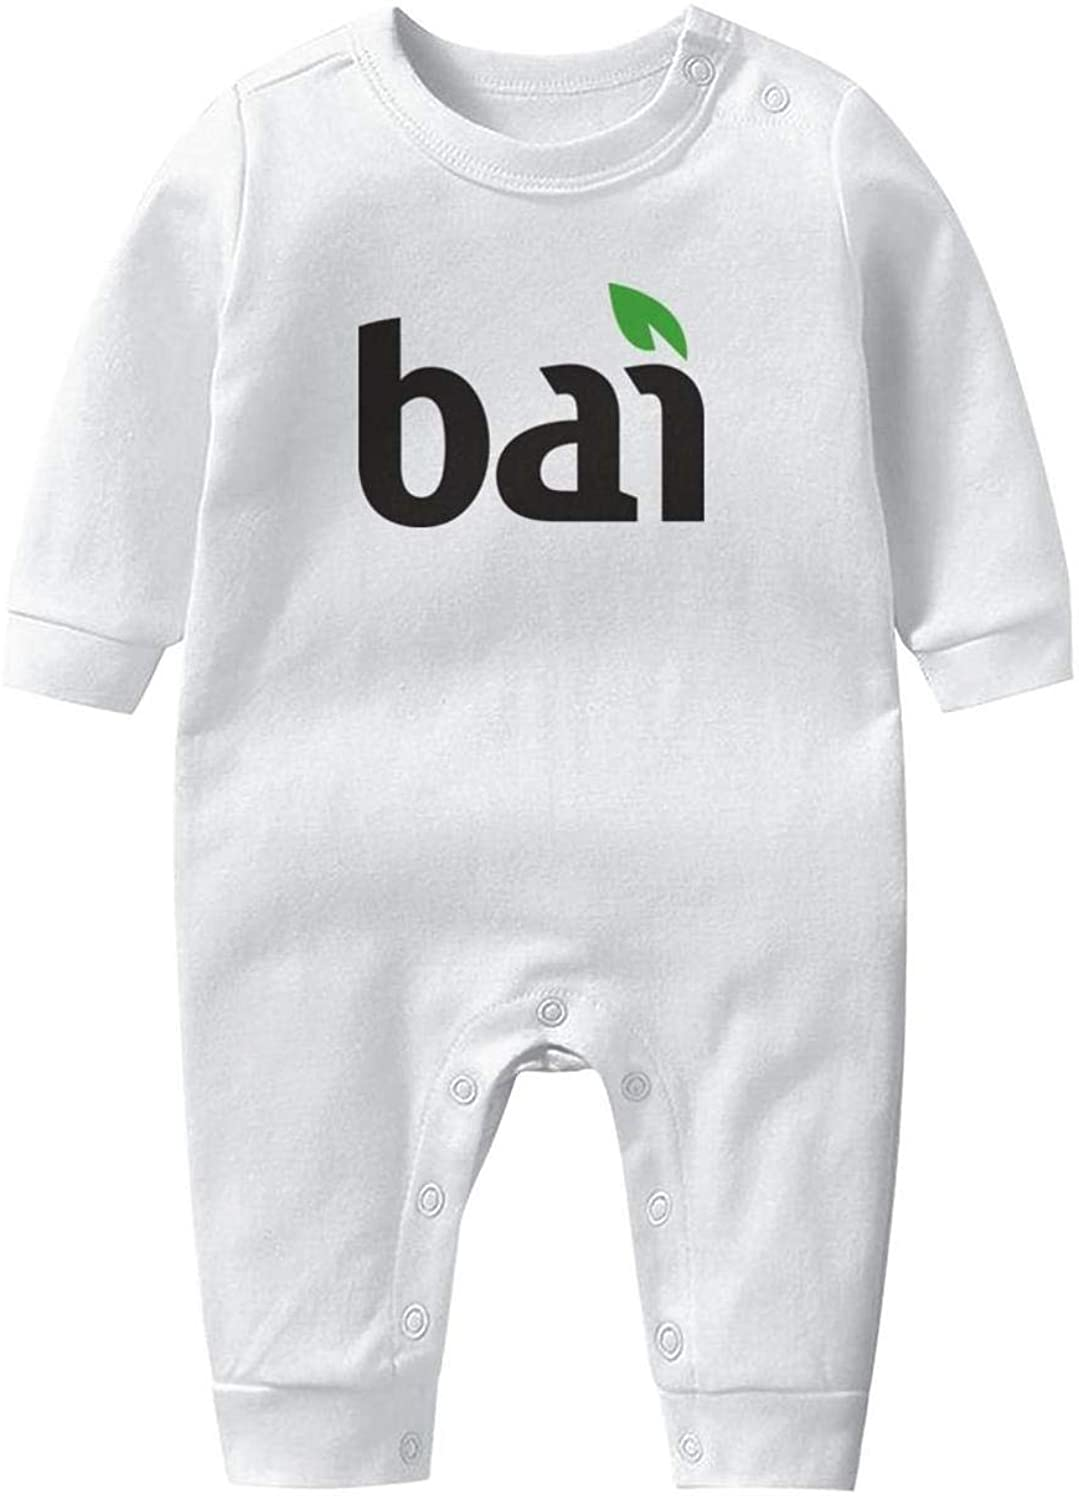 NIANLJHDe Bubble-Up-Soft-Drink- Baby Boys Girls Long Sleeve Baby Onesie Baby Romper